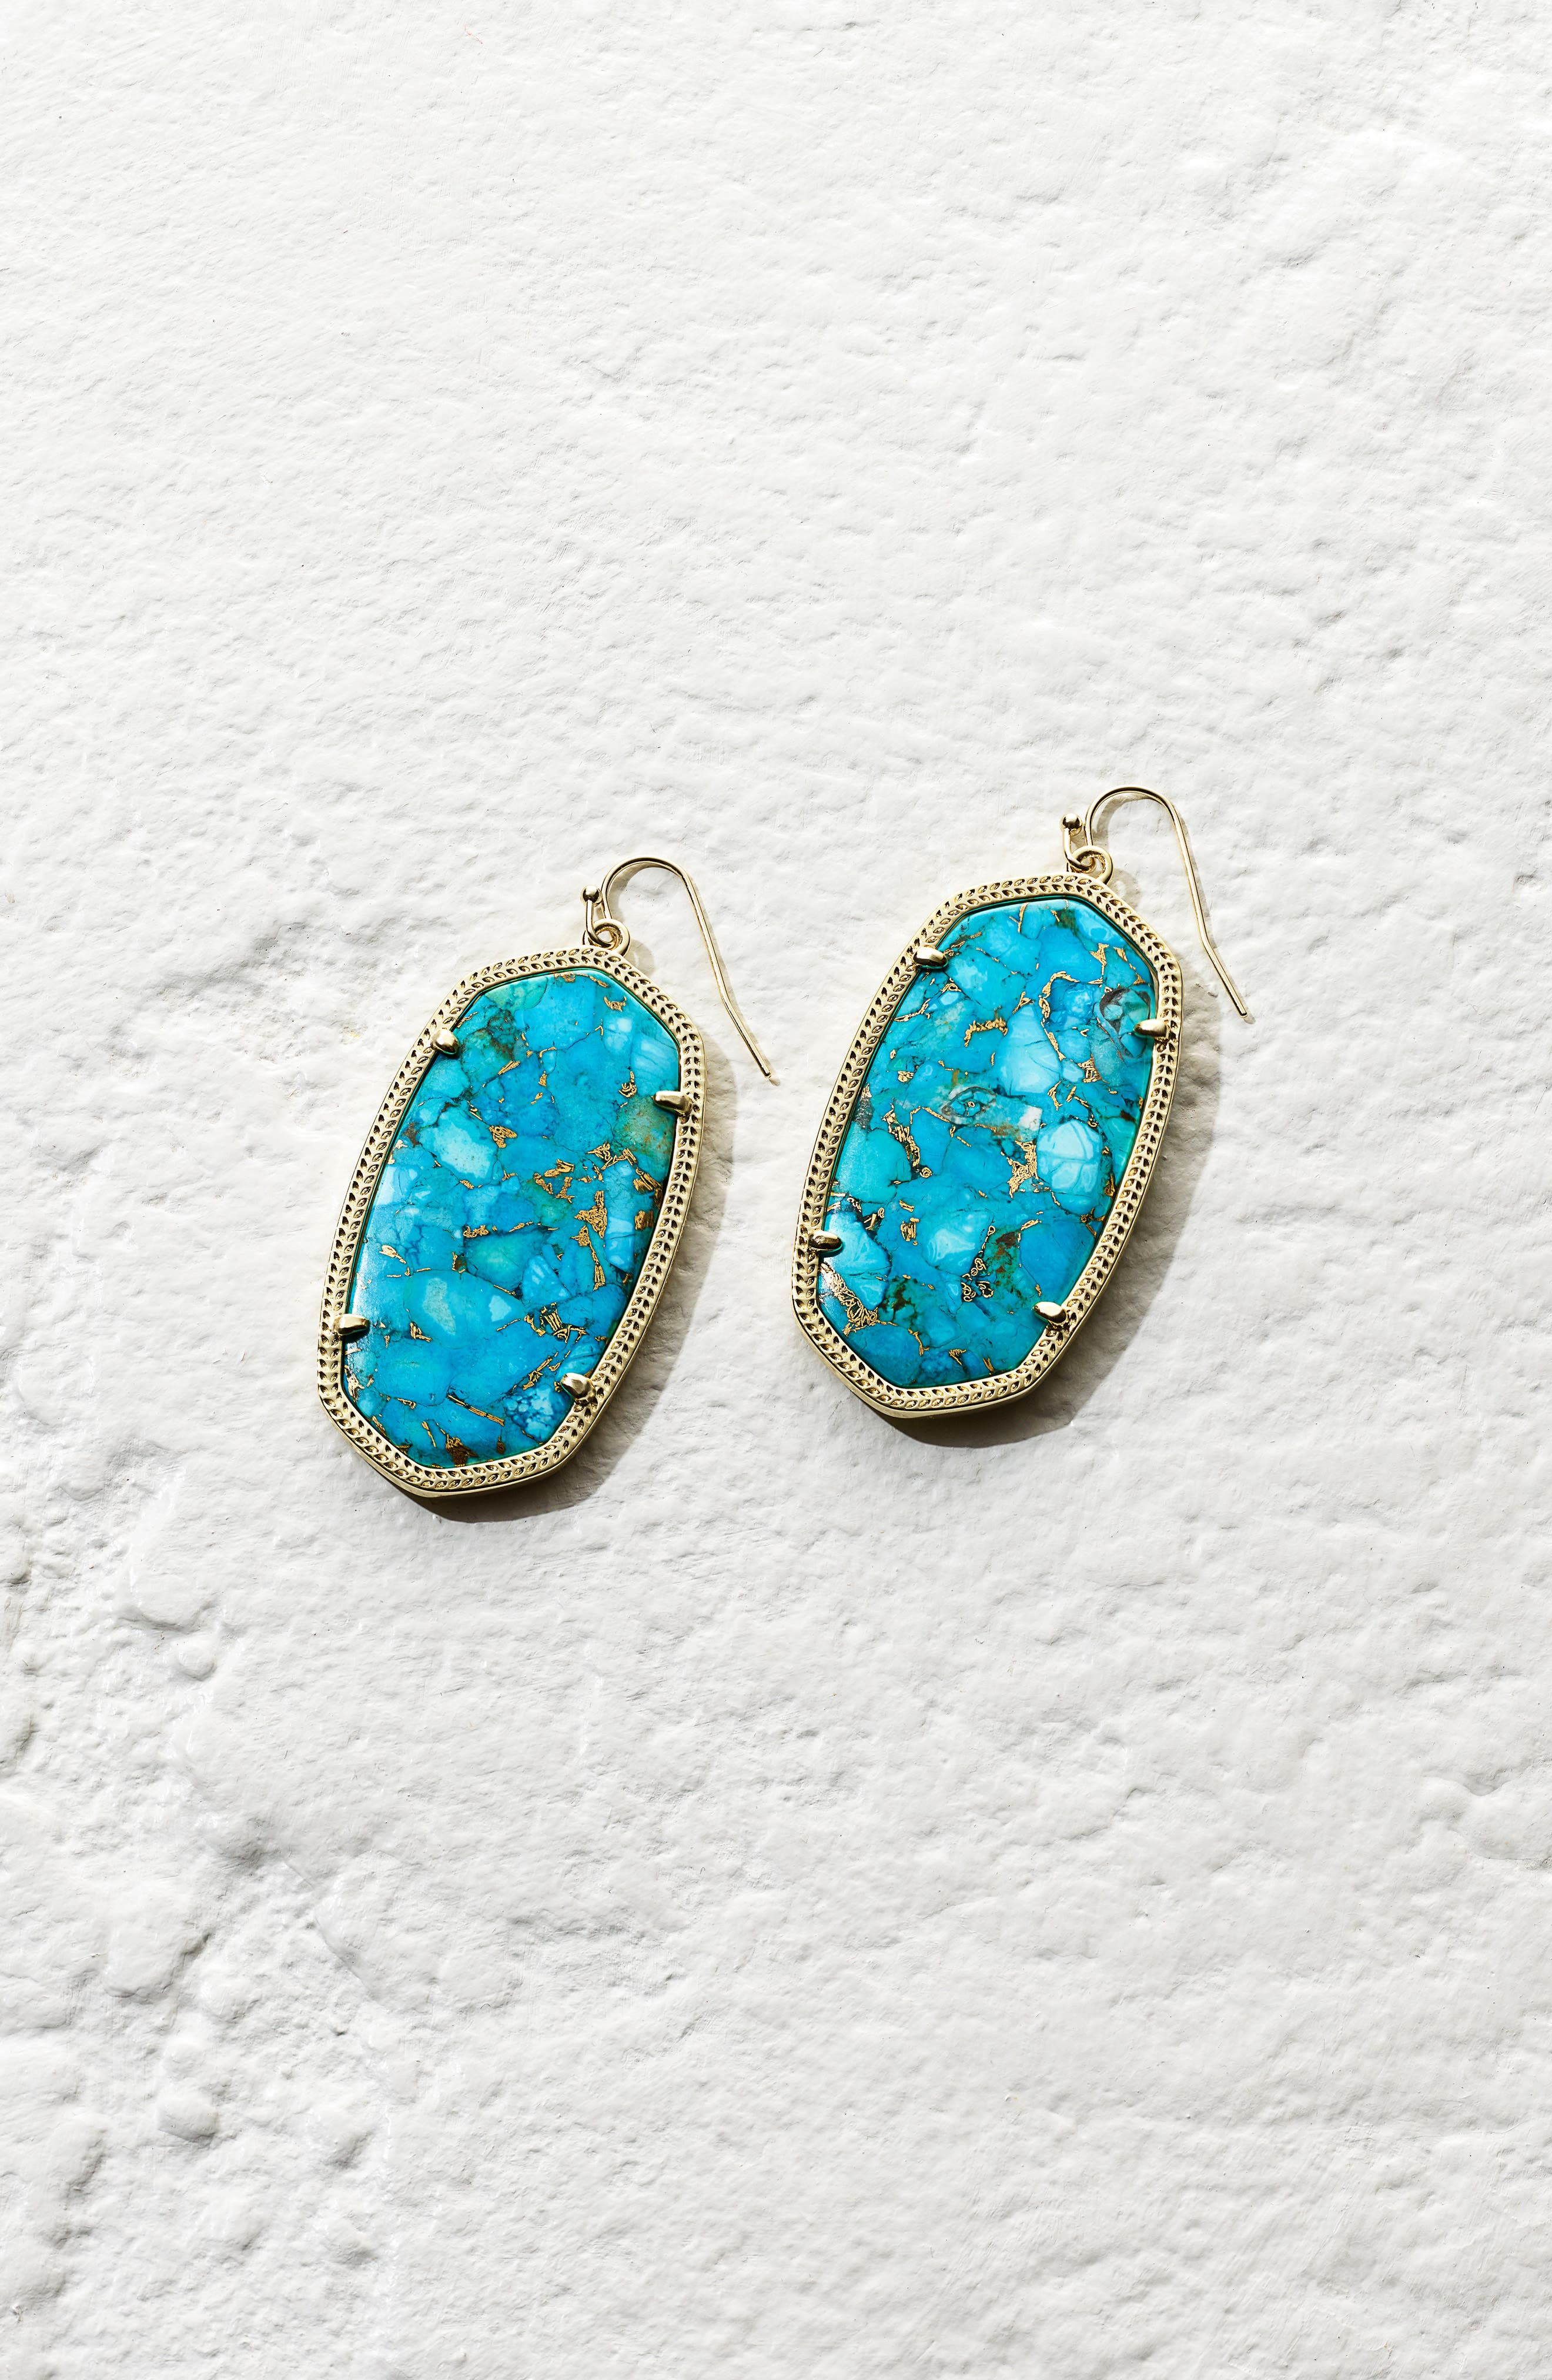 Danielle - Large Oval Statement Earrings,                             Alternate thumbnail 387, color,